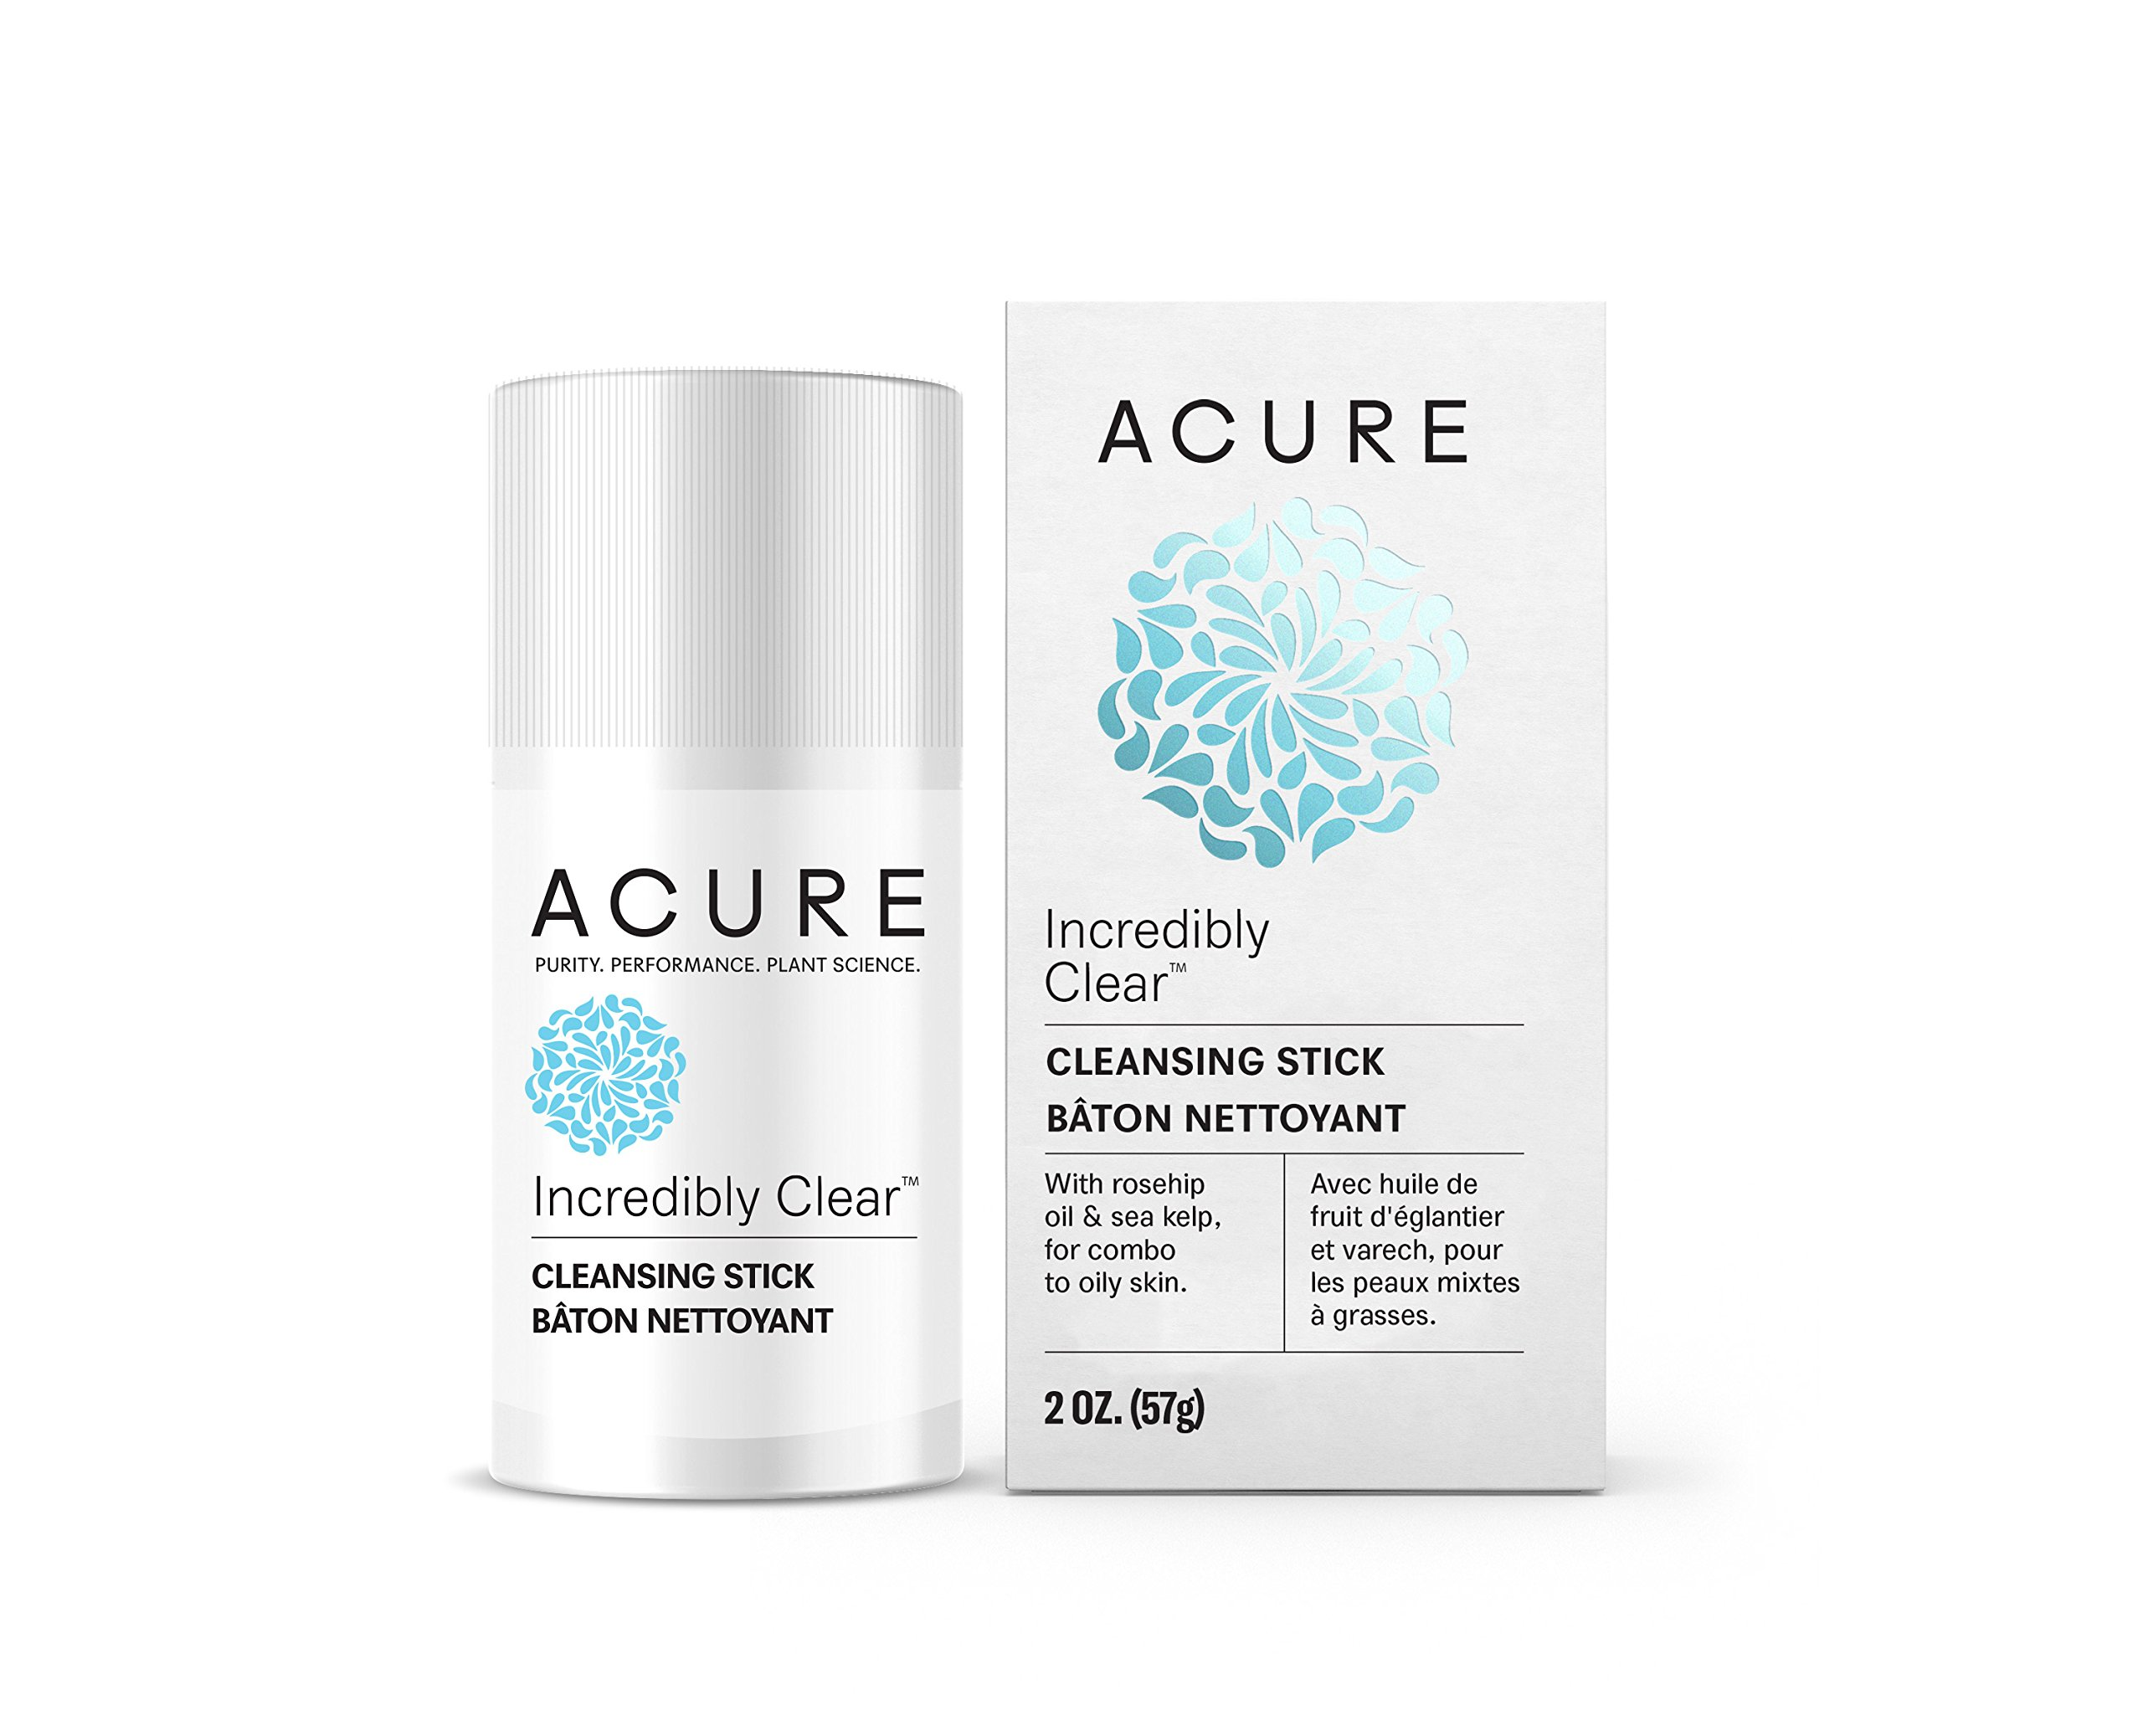 ACURE Incredibly Clear Cleansing Stick, 2 Oz. (Packaging May Vary)